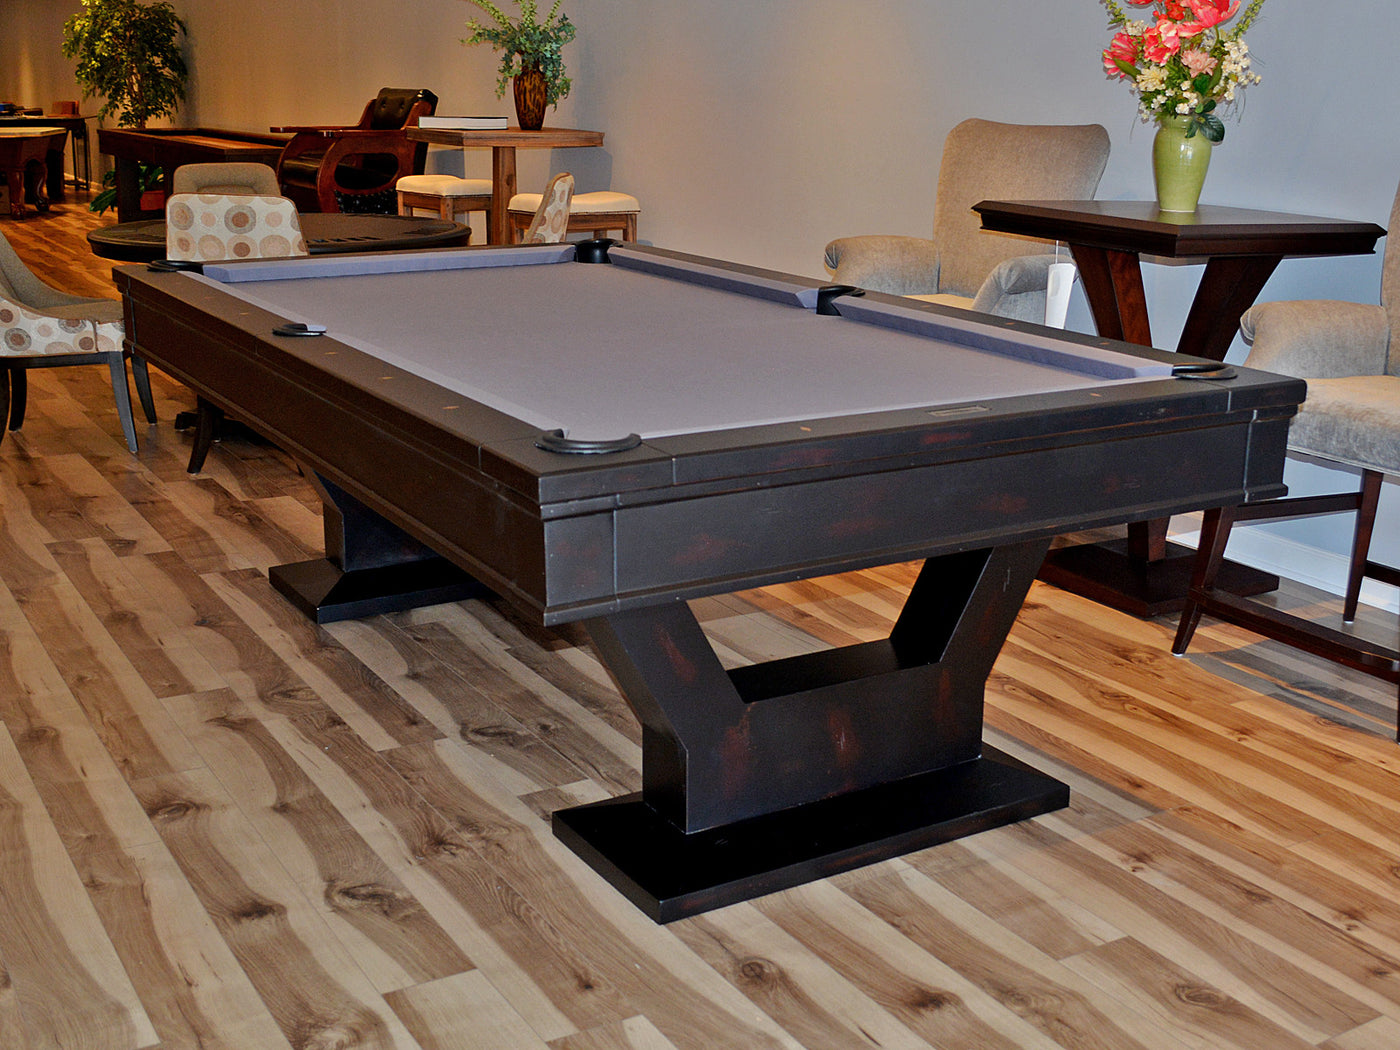 Plank and hide gaston pool table robbies billiards plank and hide gaston pool table coffee geotapseo Gallery